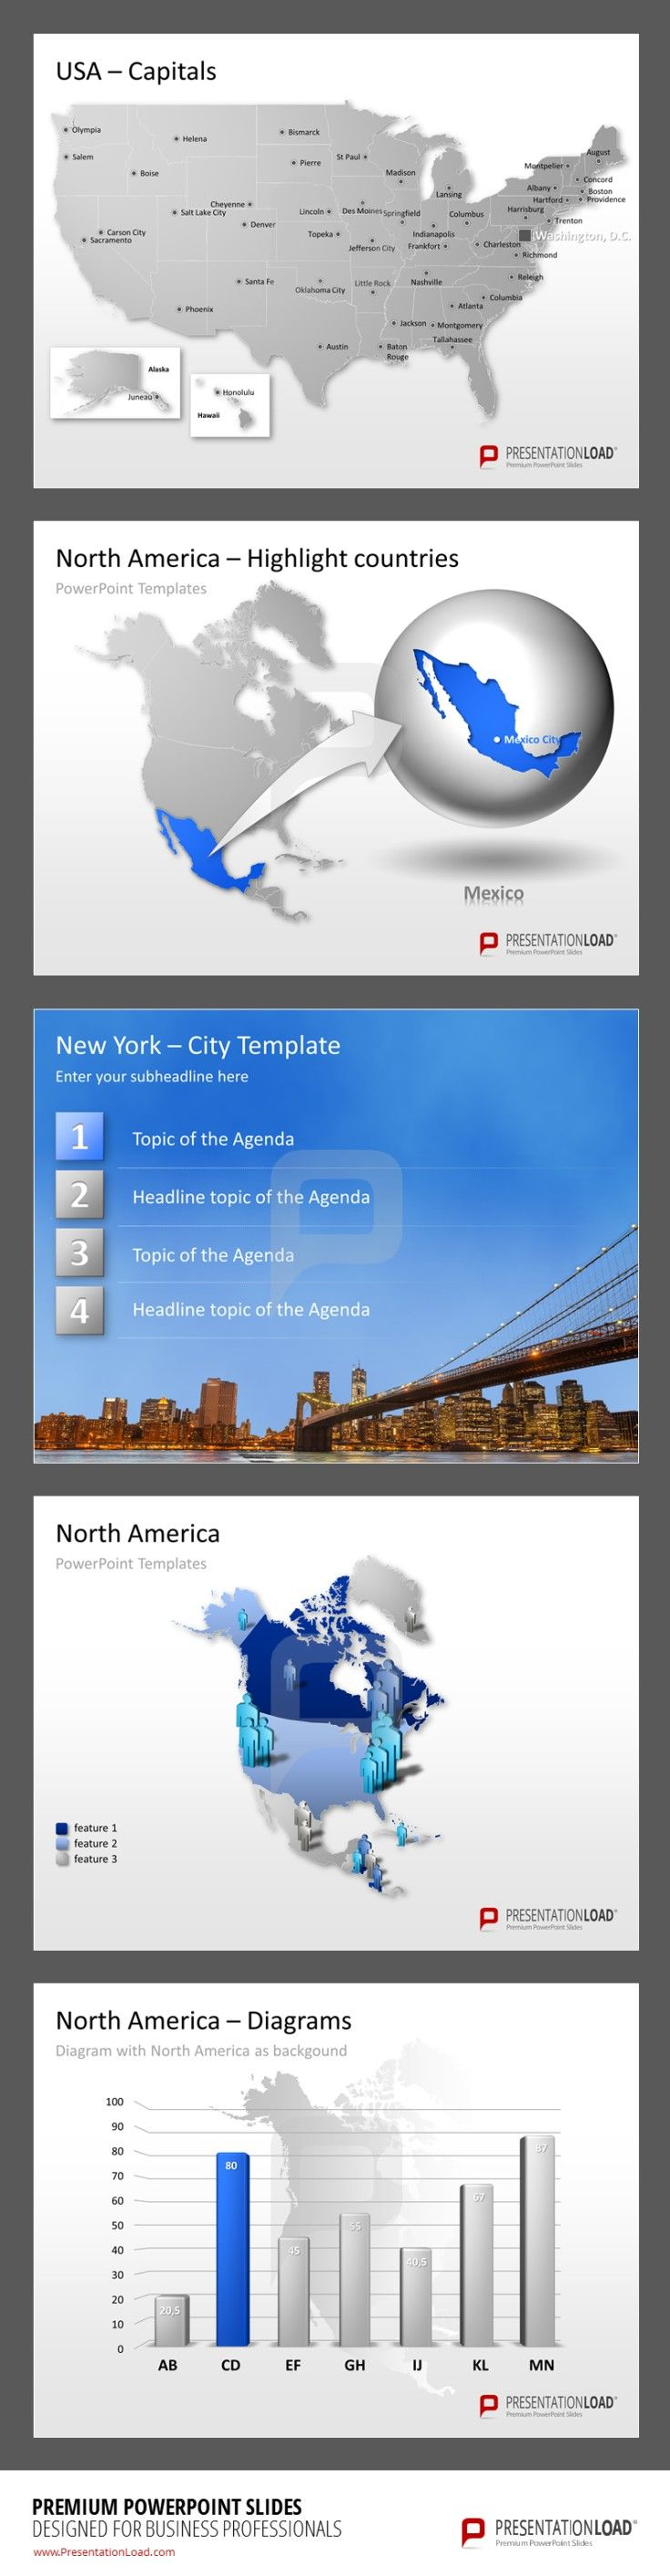 Best Images About MAPS  POWERPOINT TEMPLATES On Pinterest - Map of united states for powerpoint presentation